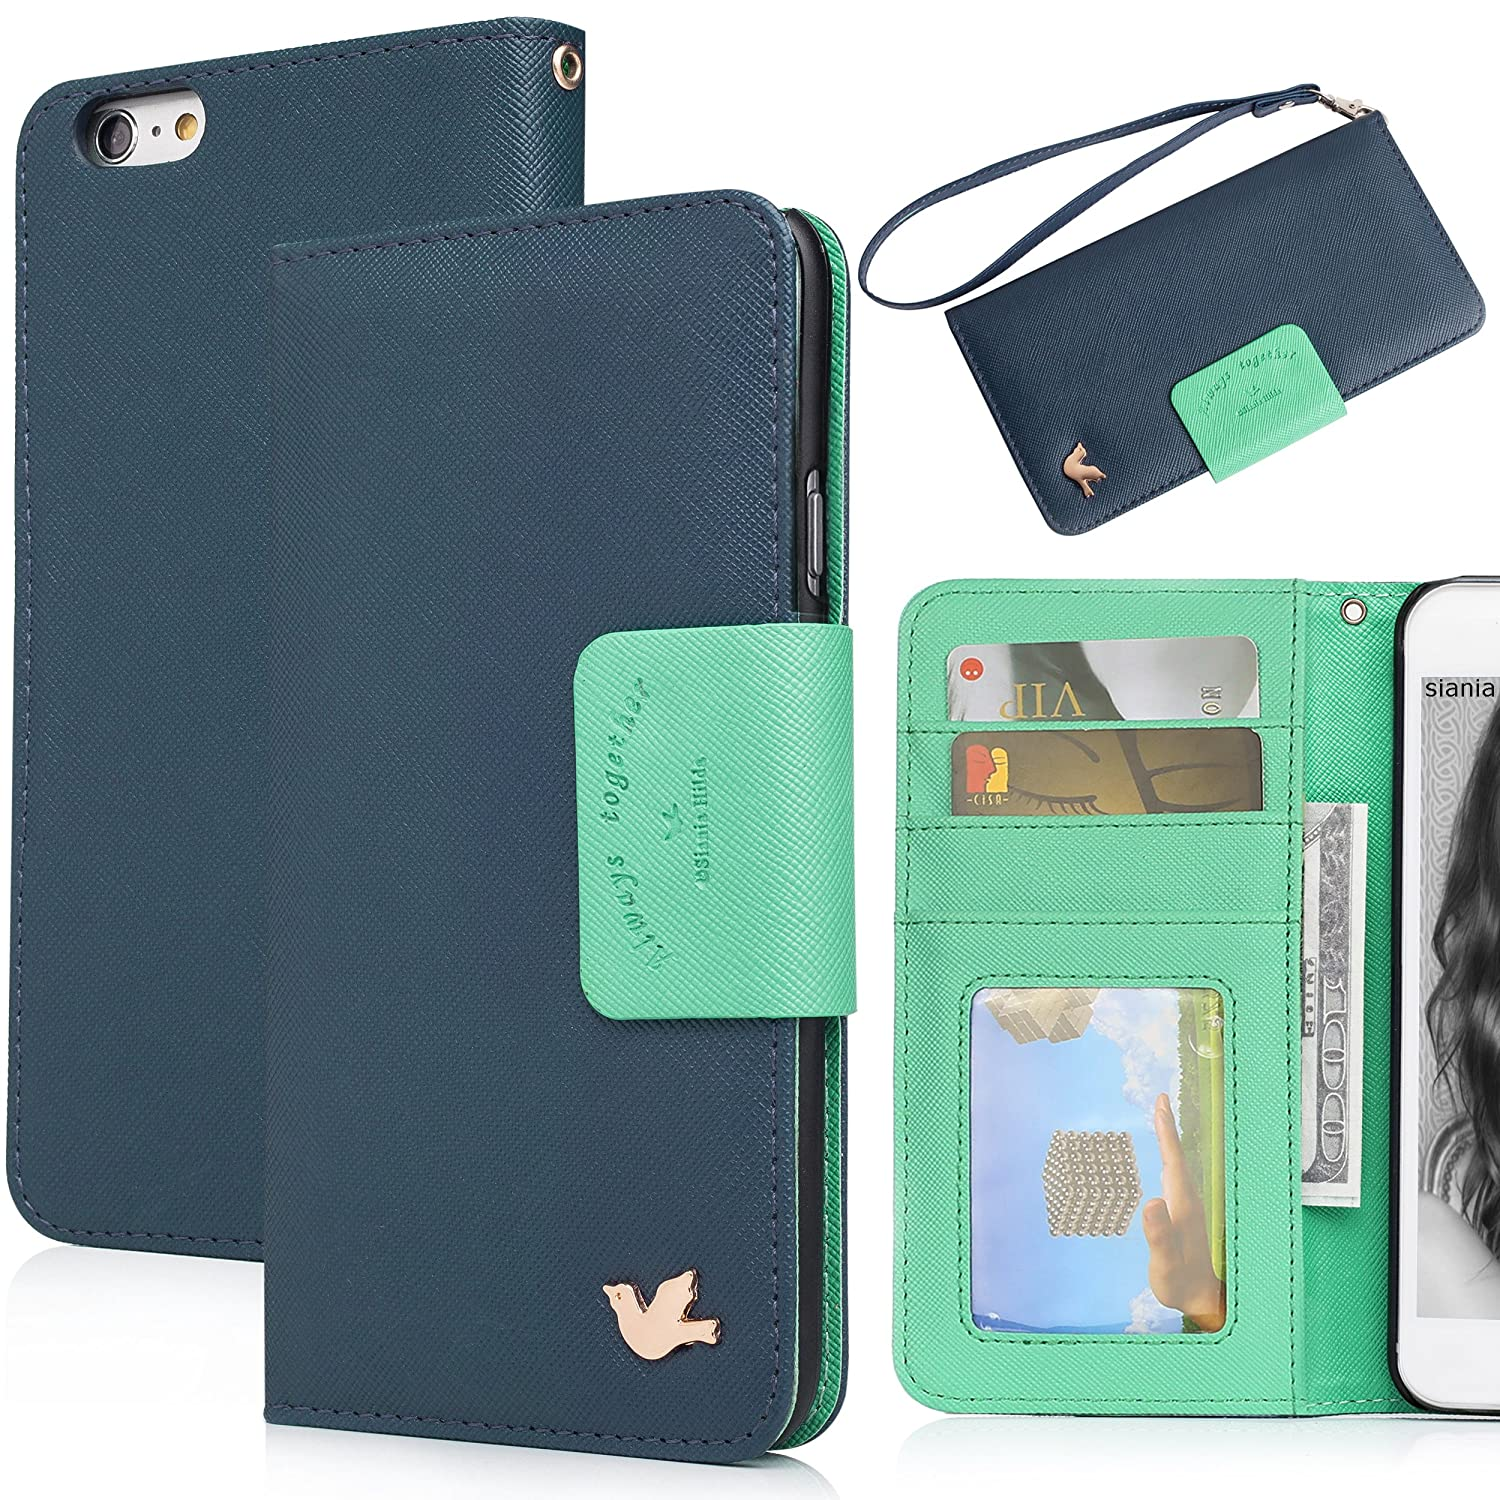 Best Wallet 2020 Top 10 Best iPhone 6 Wallet Case Covers Reviews 2019 2020 on